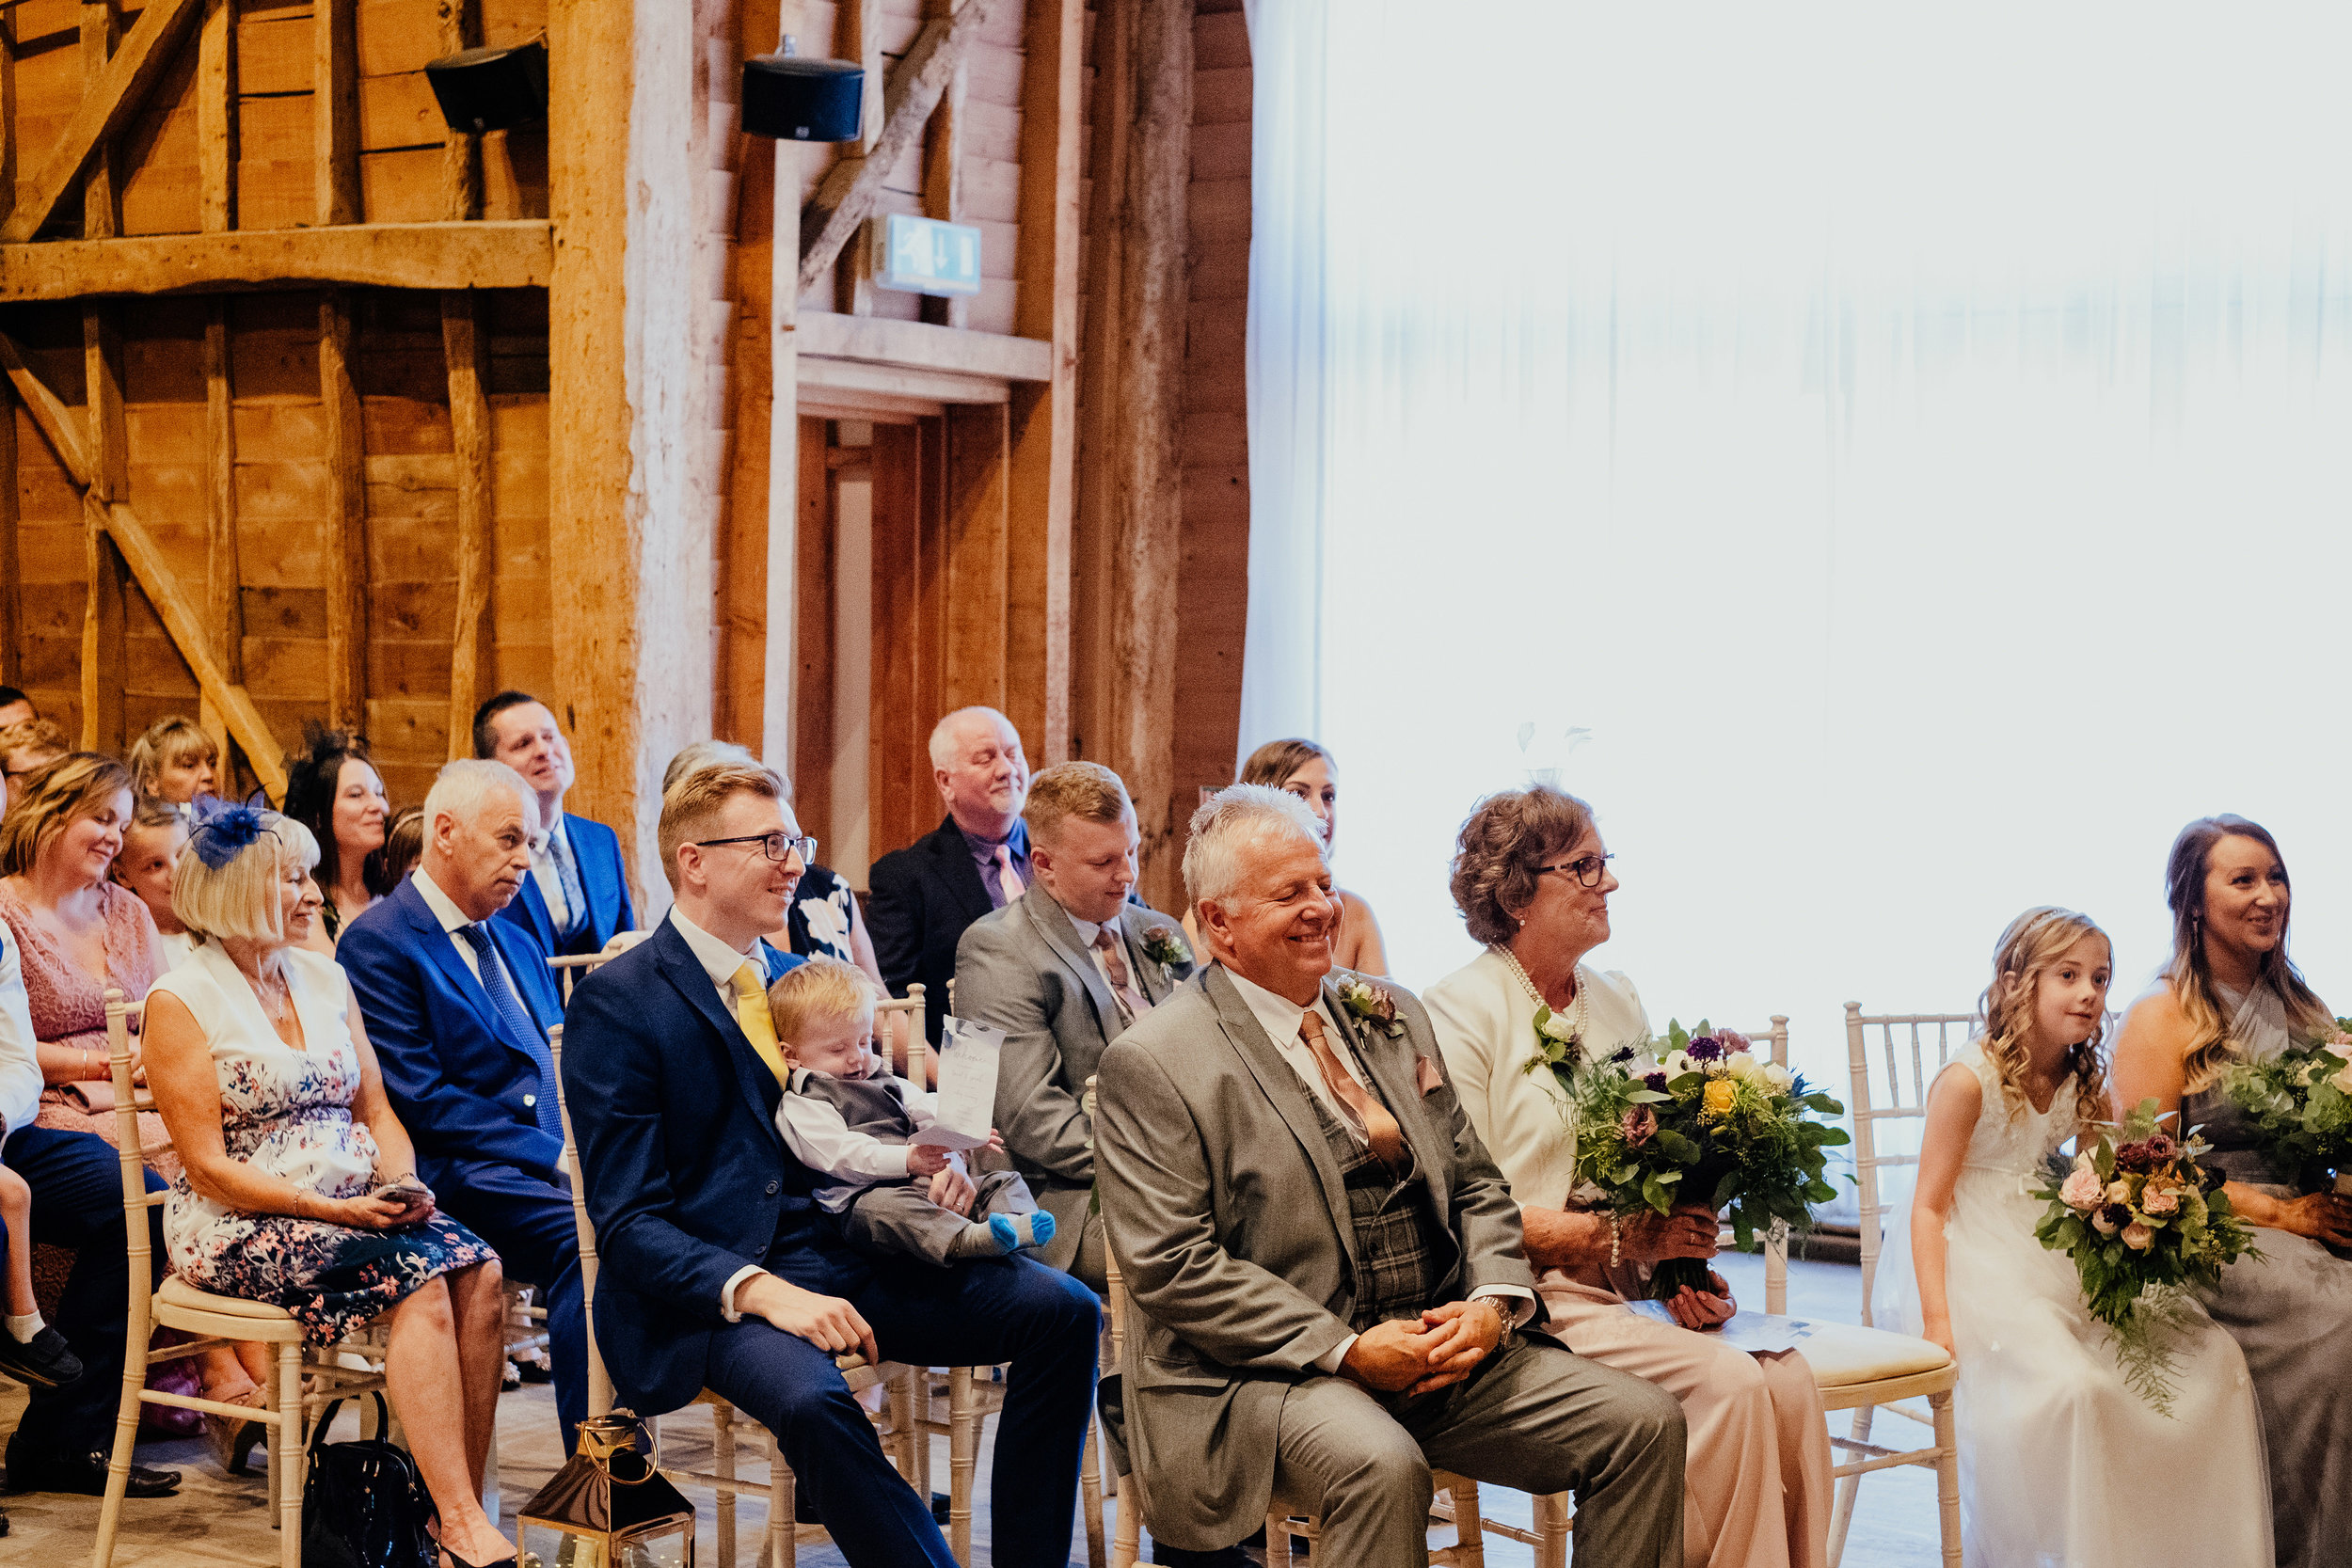 Wedding guests smiling during reading